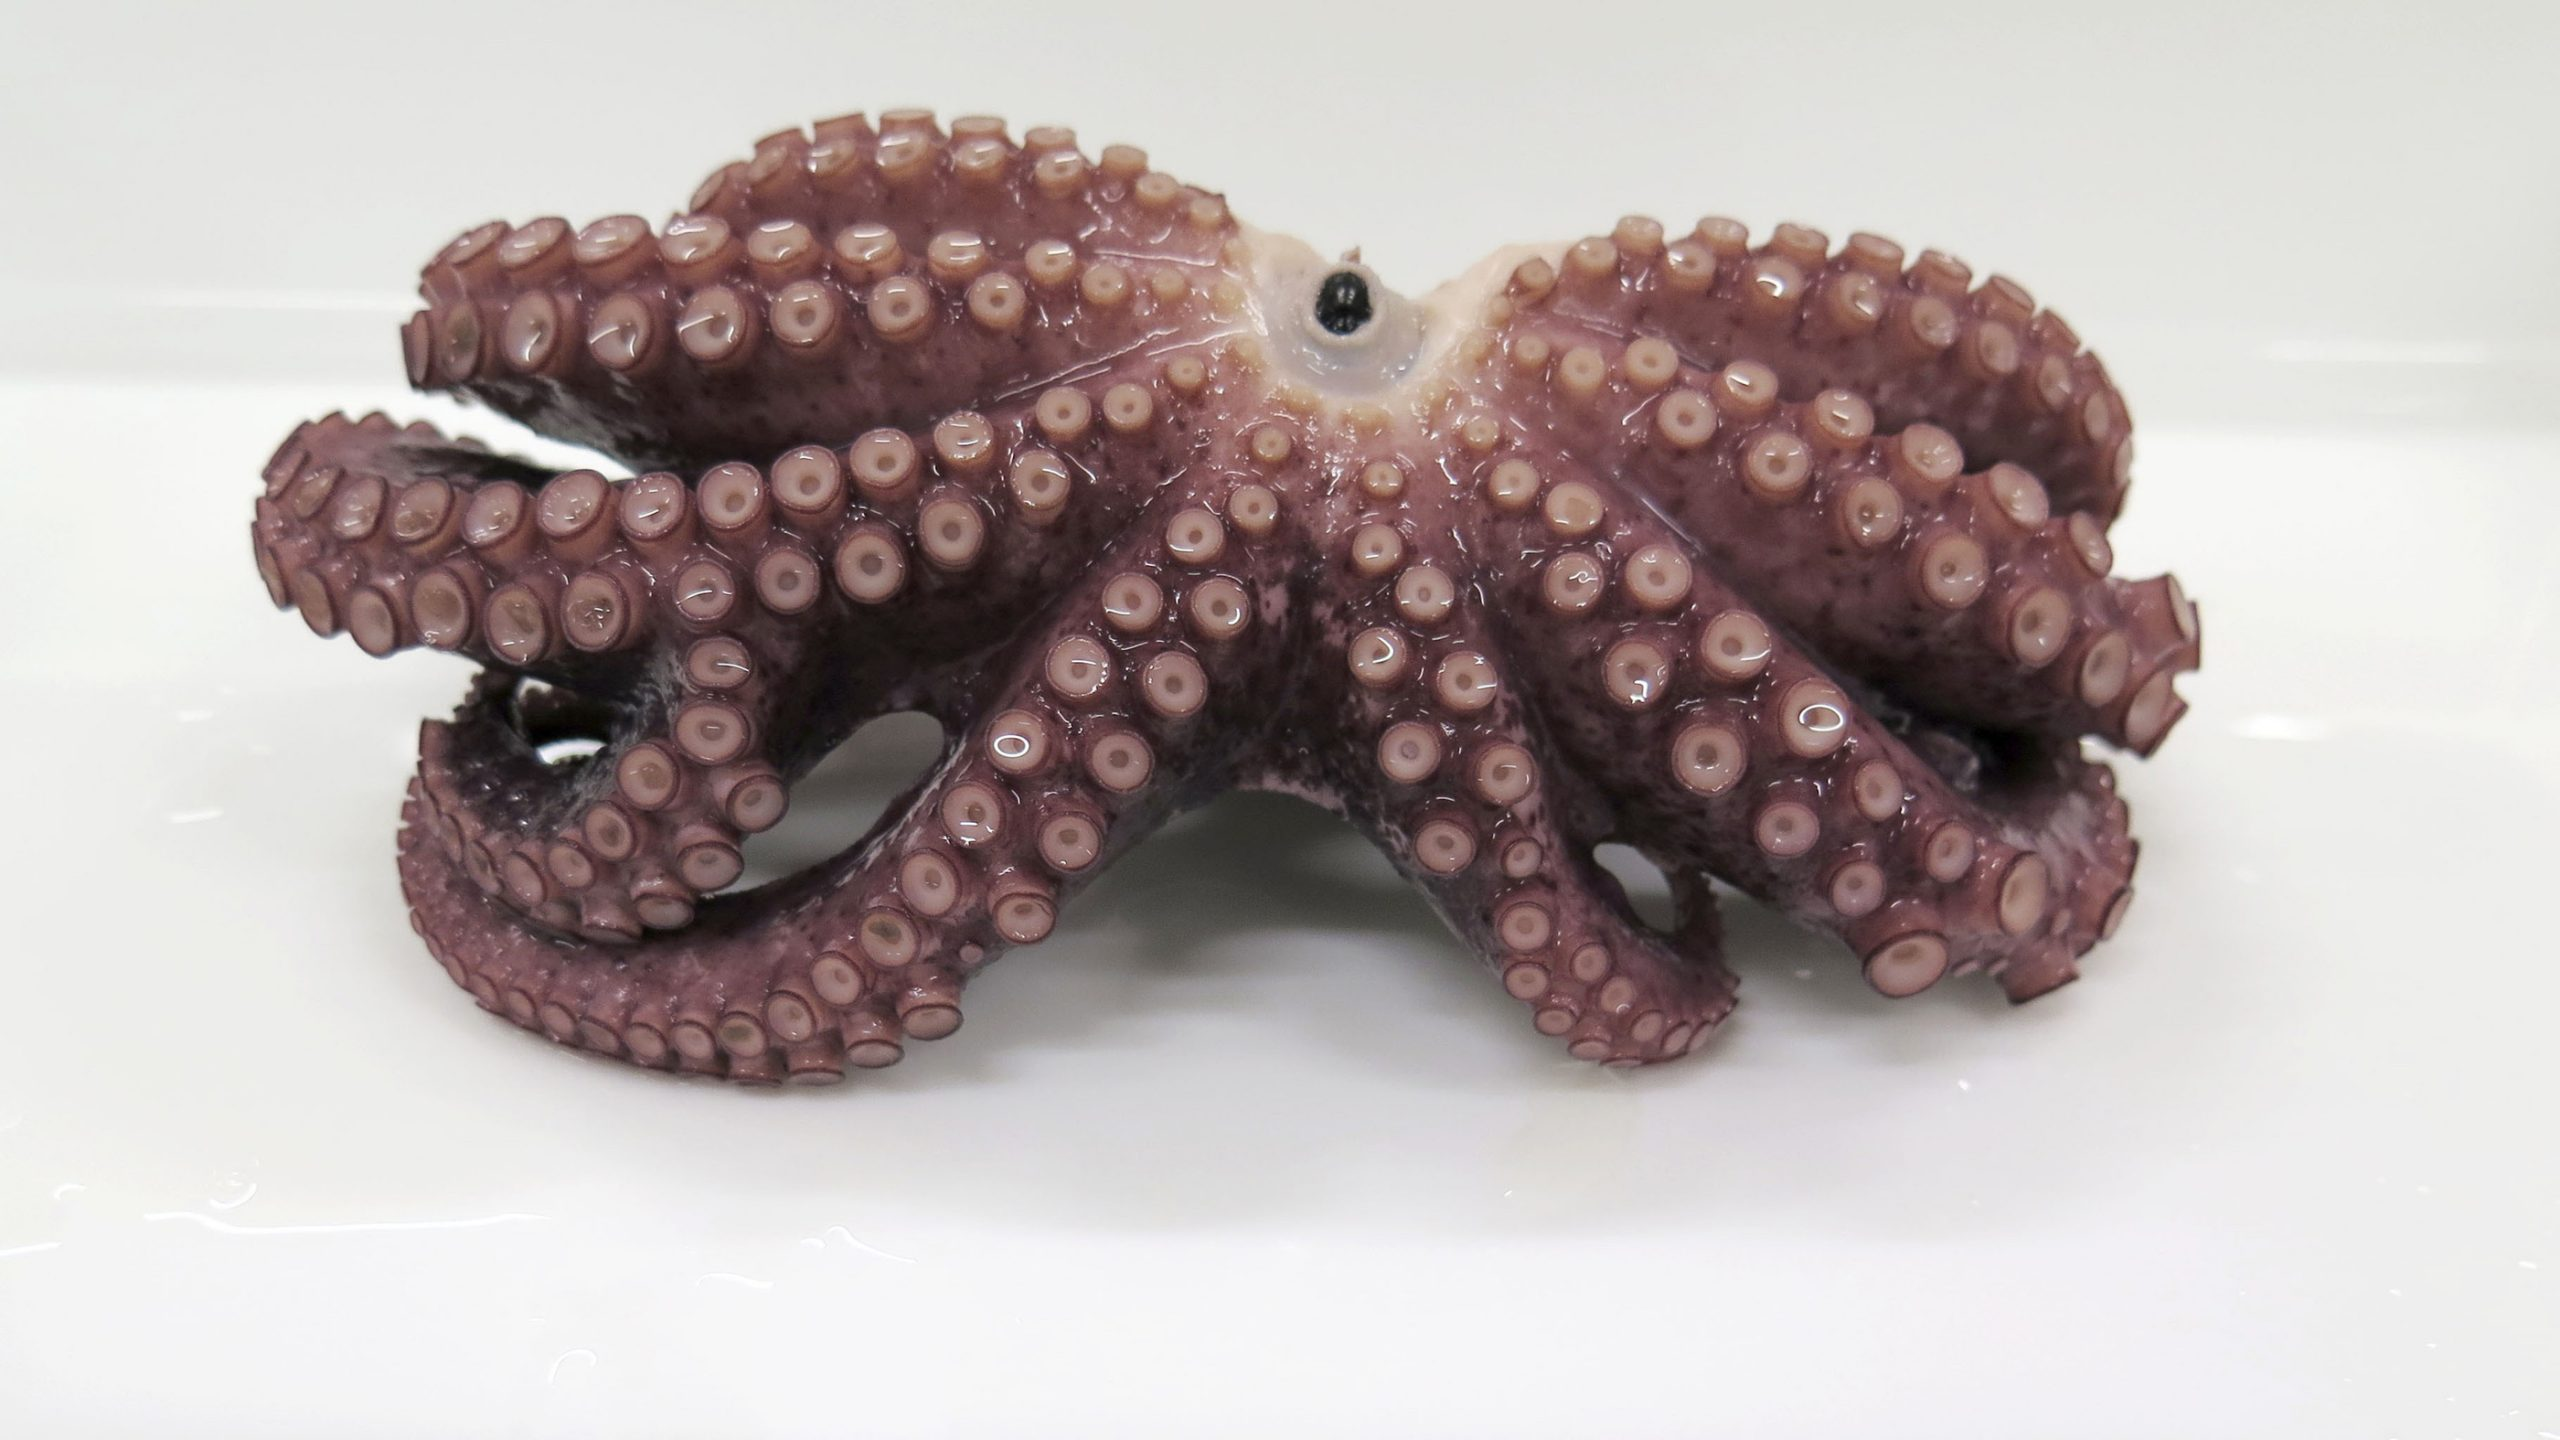 Rare 9-armed octopus found off Japan coast